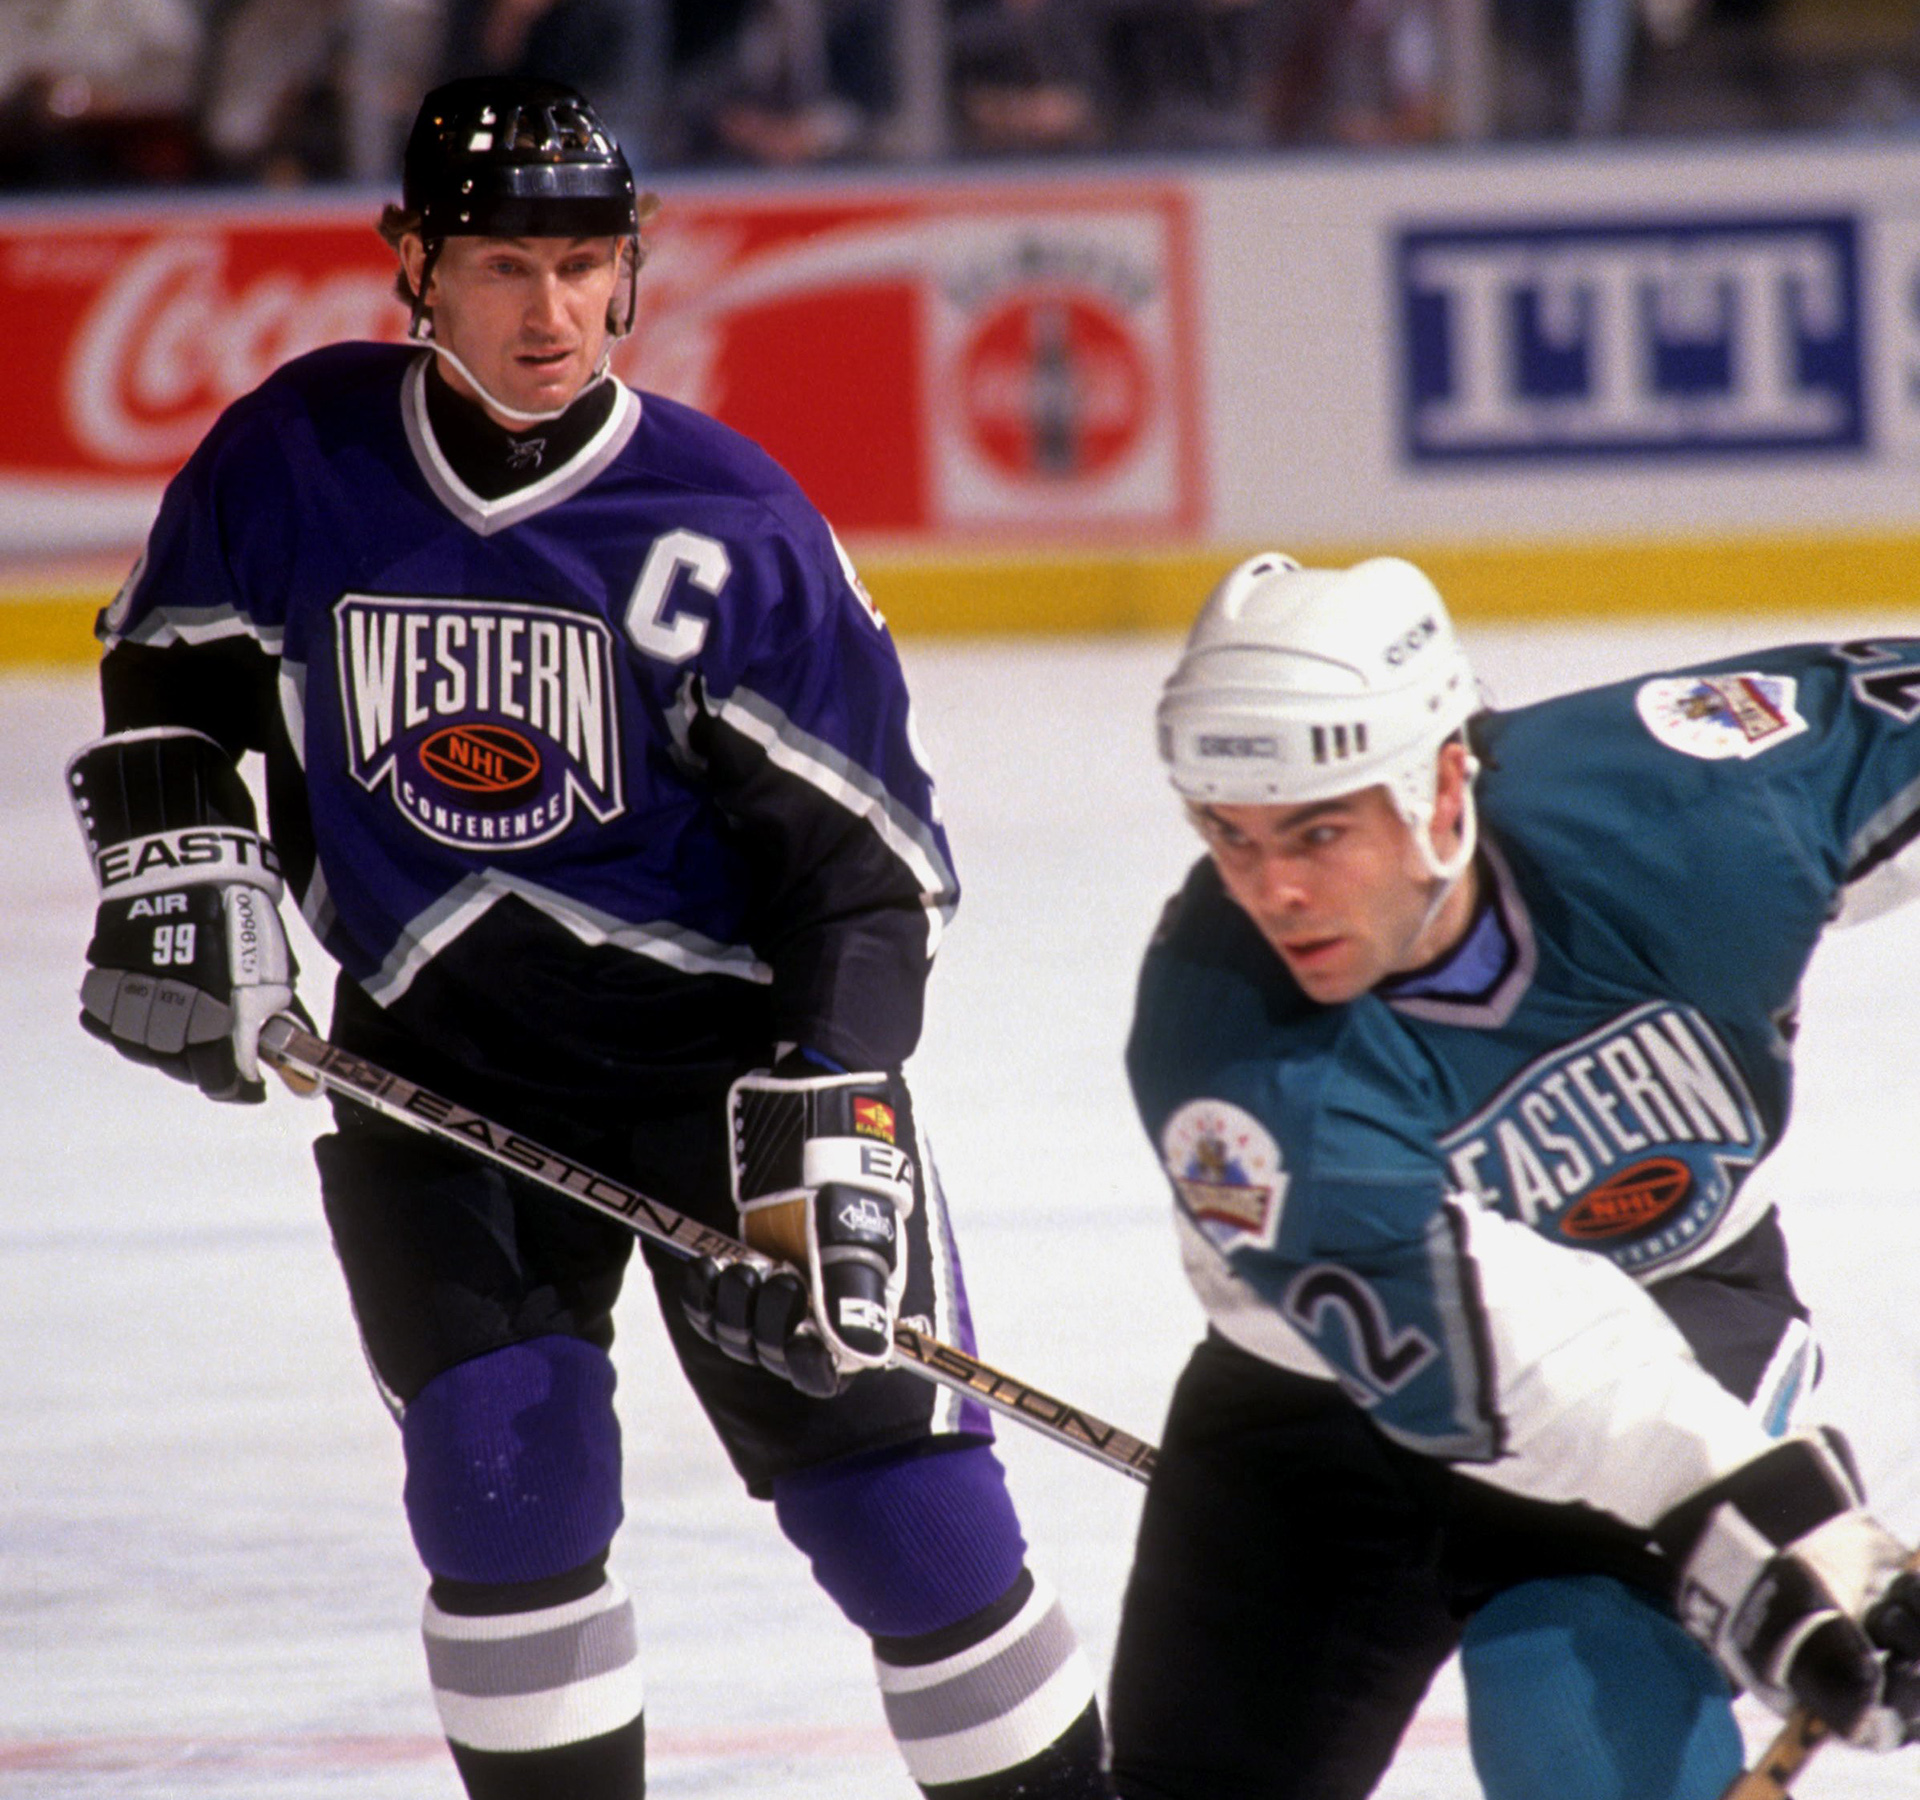 NEW YORK, NY - JANUARY 22: Wayne Gretzky #99 of the Western Conference and the Los Angeles Kings watches Adam Oates #12 of the Eastern Conference and the Boston Bruins skate with the puck during the 1994 45th NHL All-Star Game on January 22, 1994 at the Madison Square Garden in New York, New York. The Eastern Conference defeated the Western Conference 9-8. (Photo by B Bennett/Getty Images)